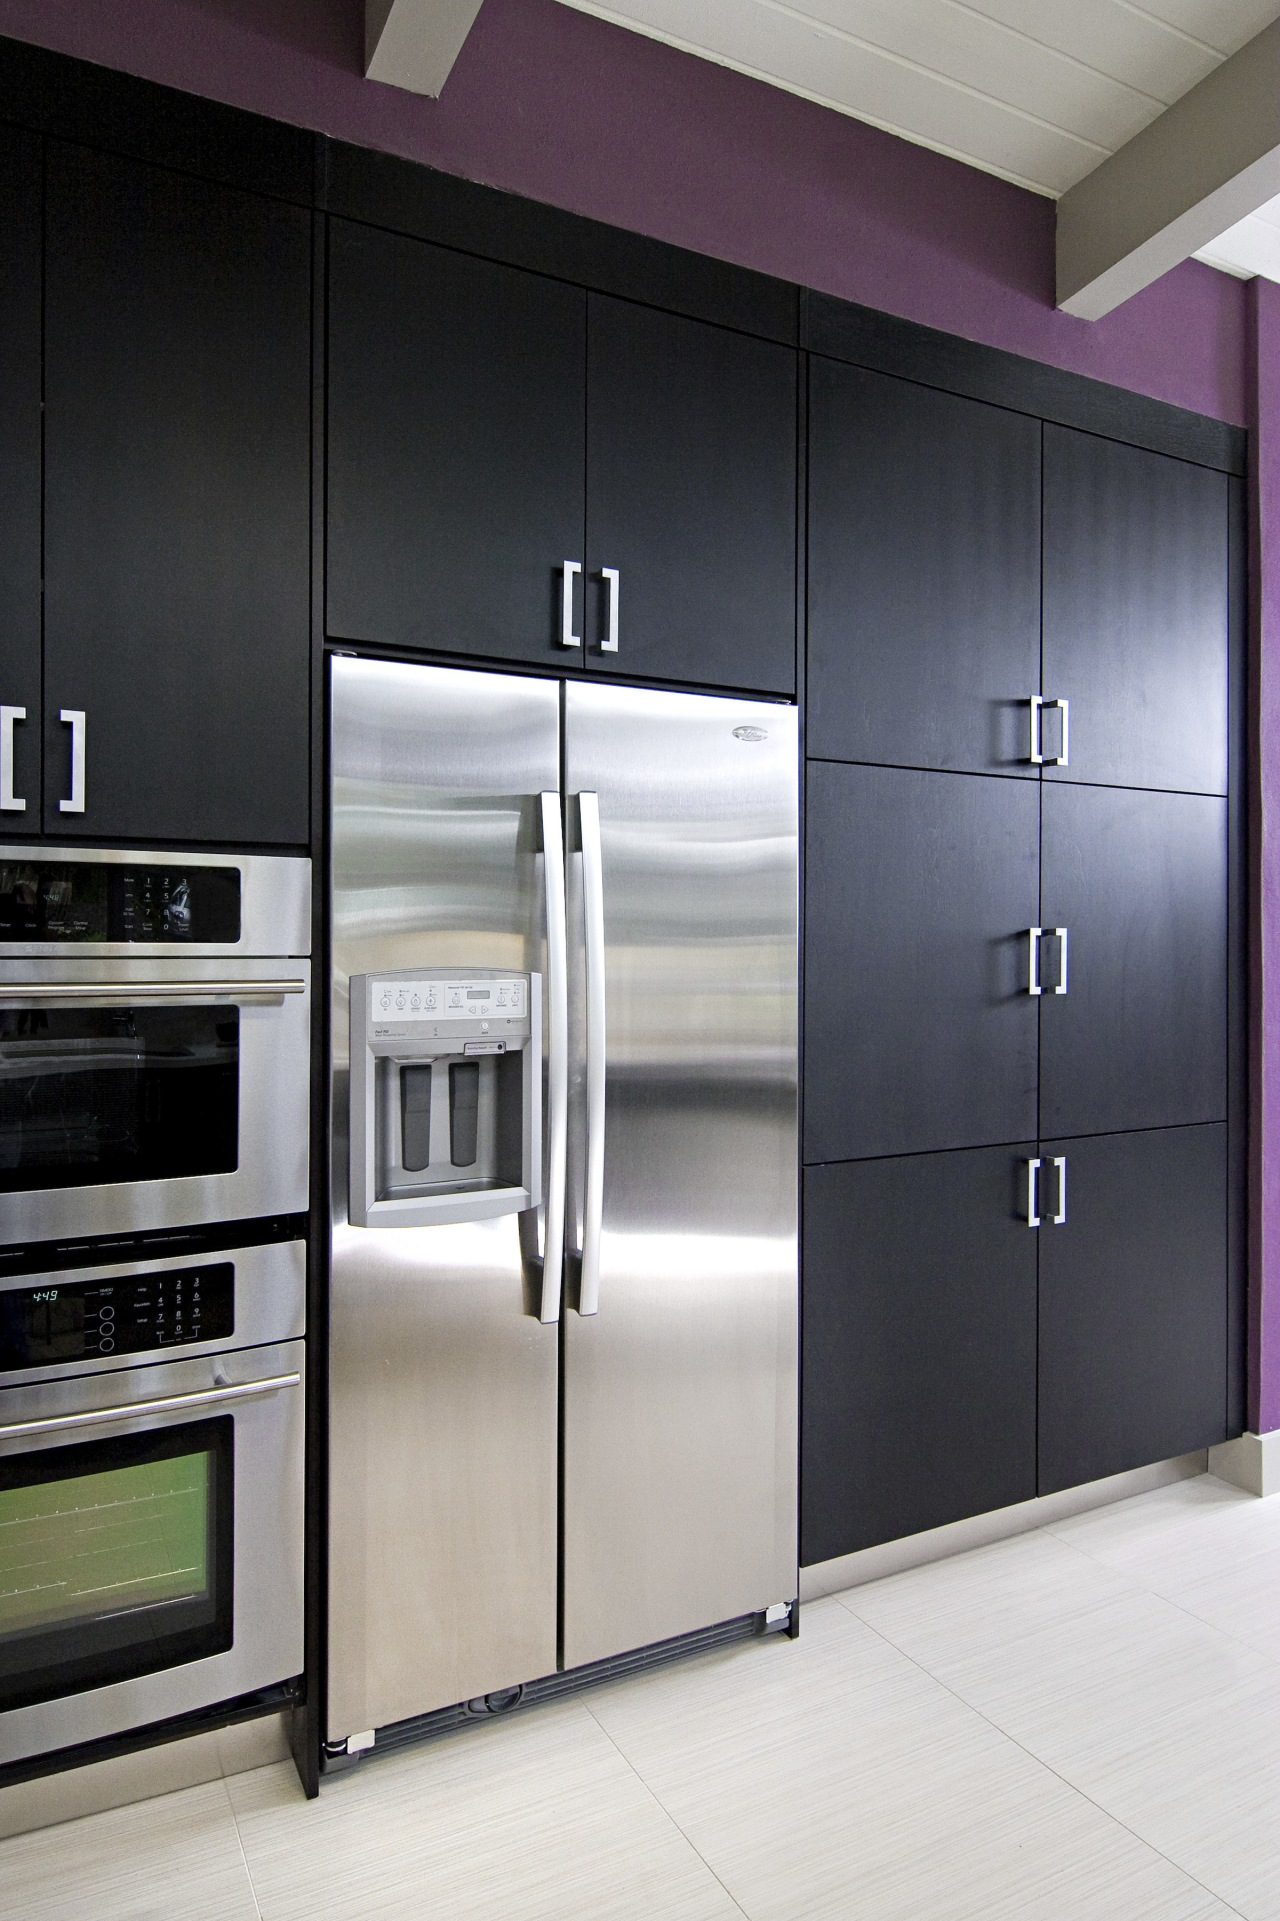 View of a remodeled kitchen which features dark cabinetry, home appliance, interior design, kitchen, major appliance, refrigerator, wardrobe, gray, black